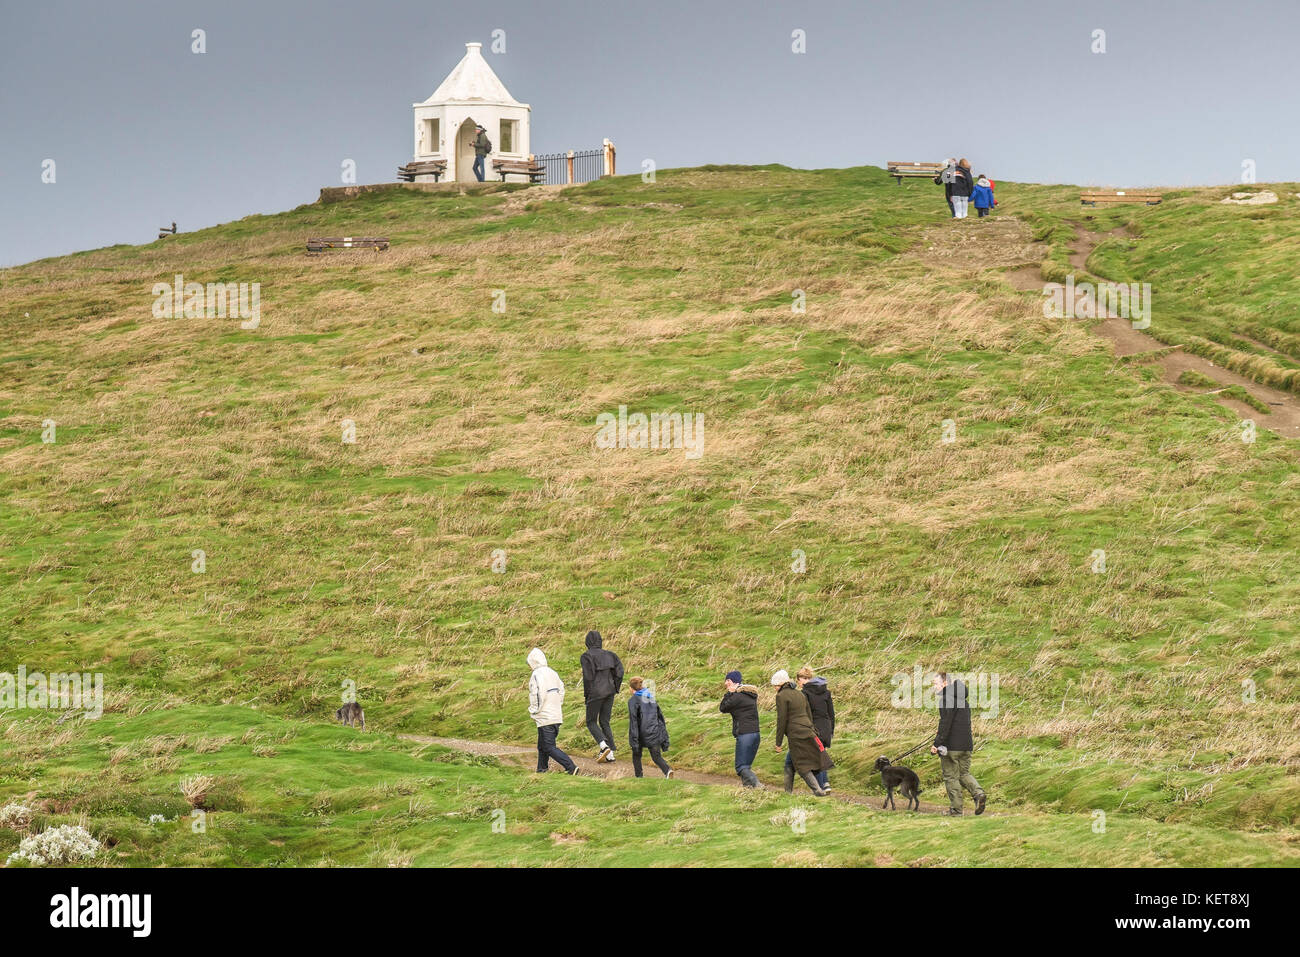 Walking in the countryside - people walking along footpaths on a hillside; - Stock Image